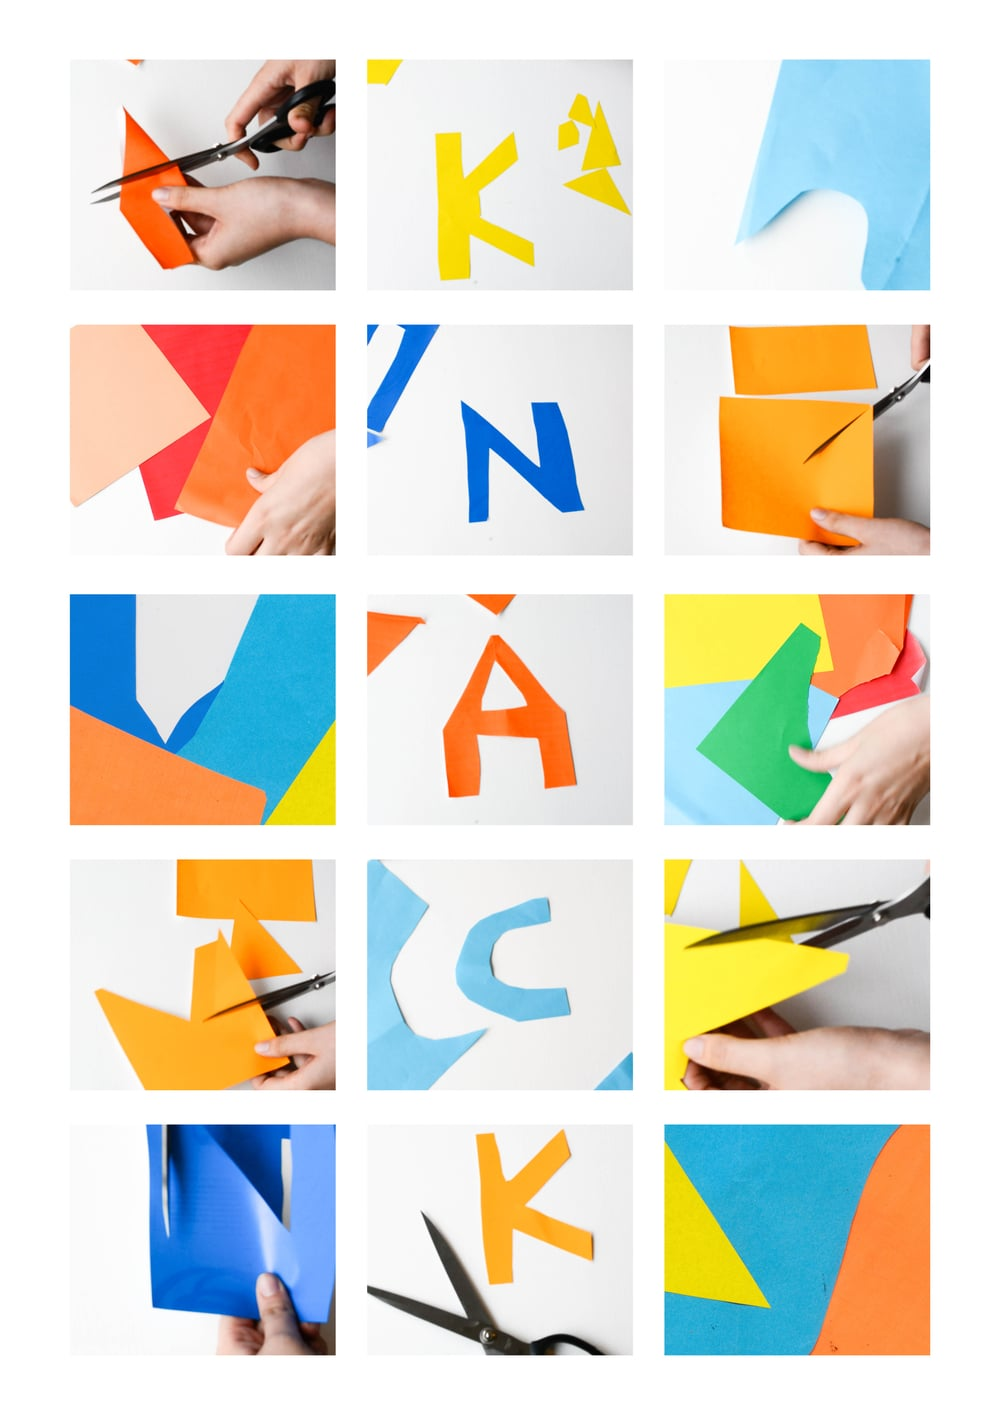 Illustrations for Knack, 2015